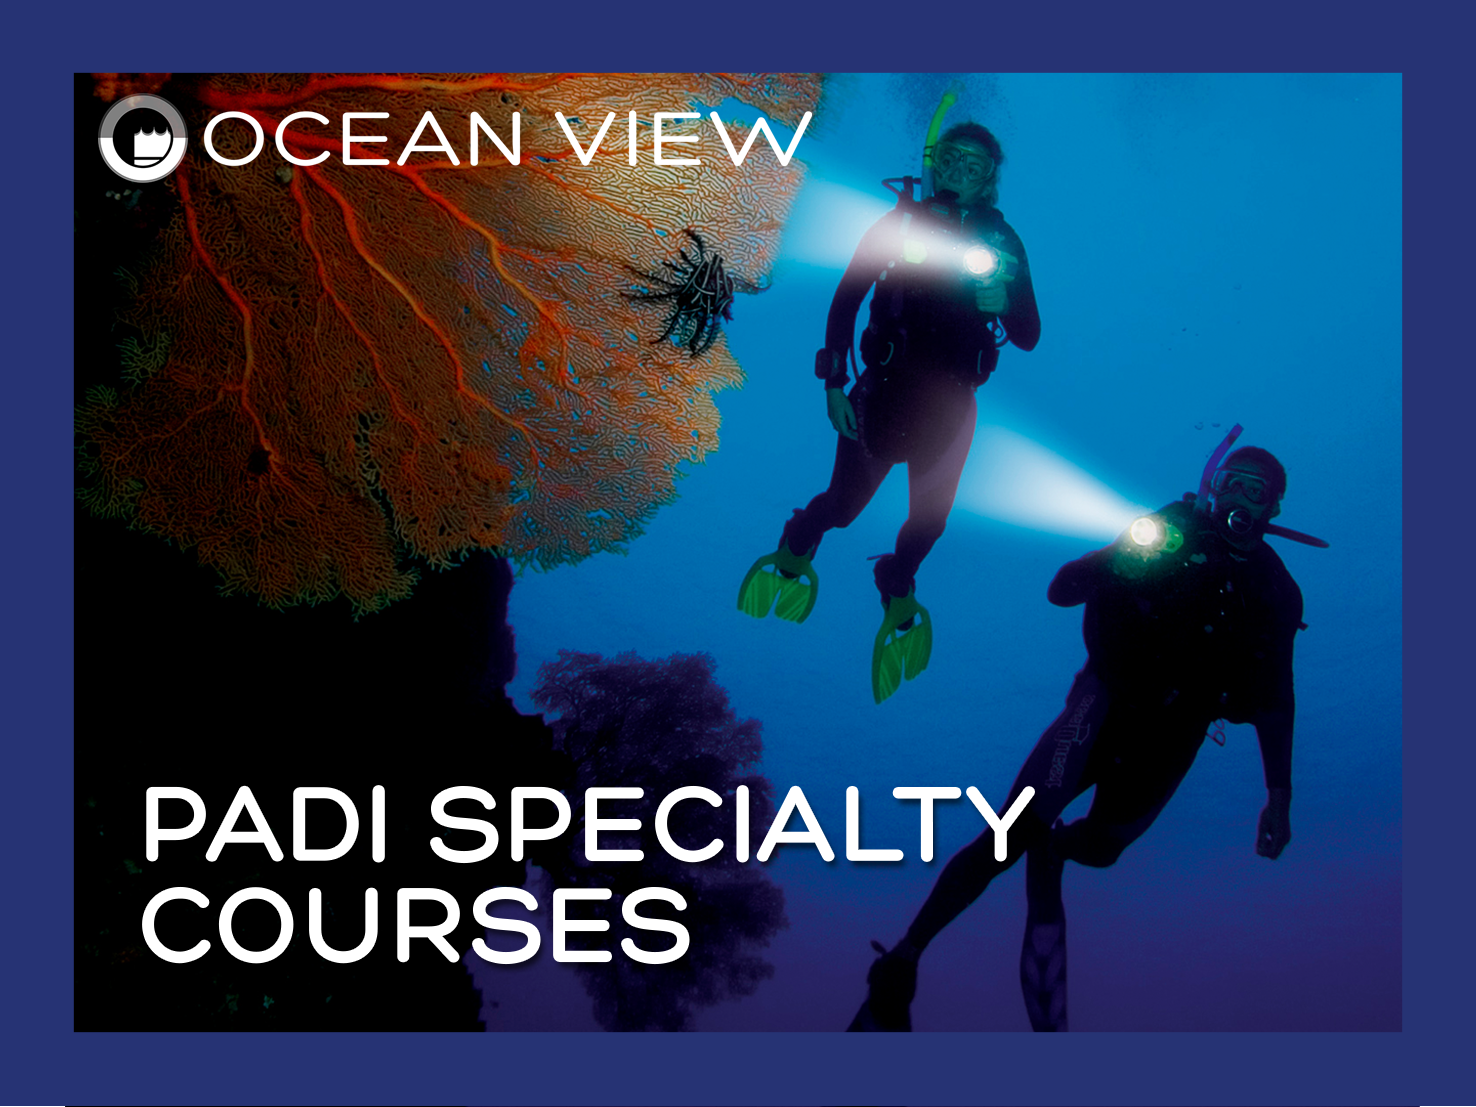 PADI Specialty with logo